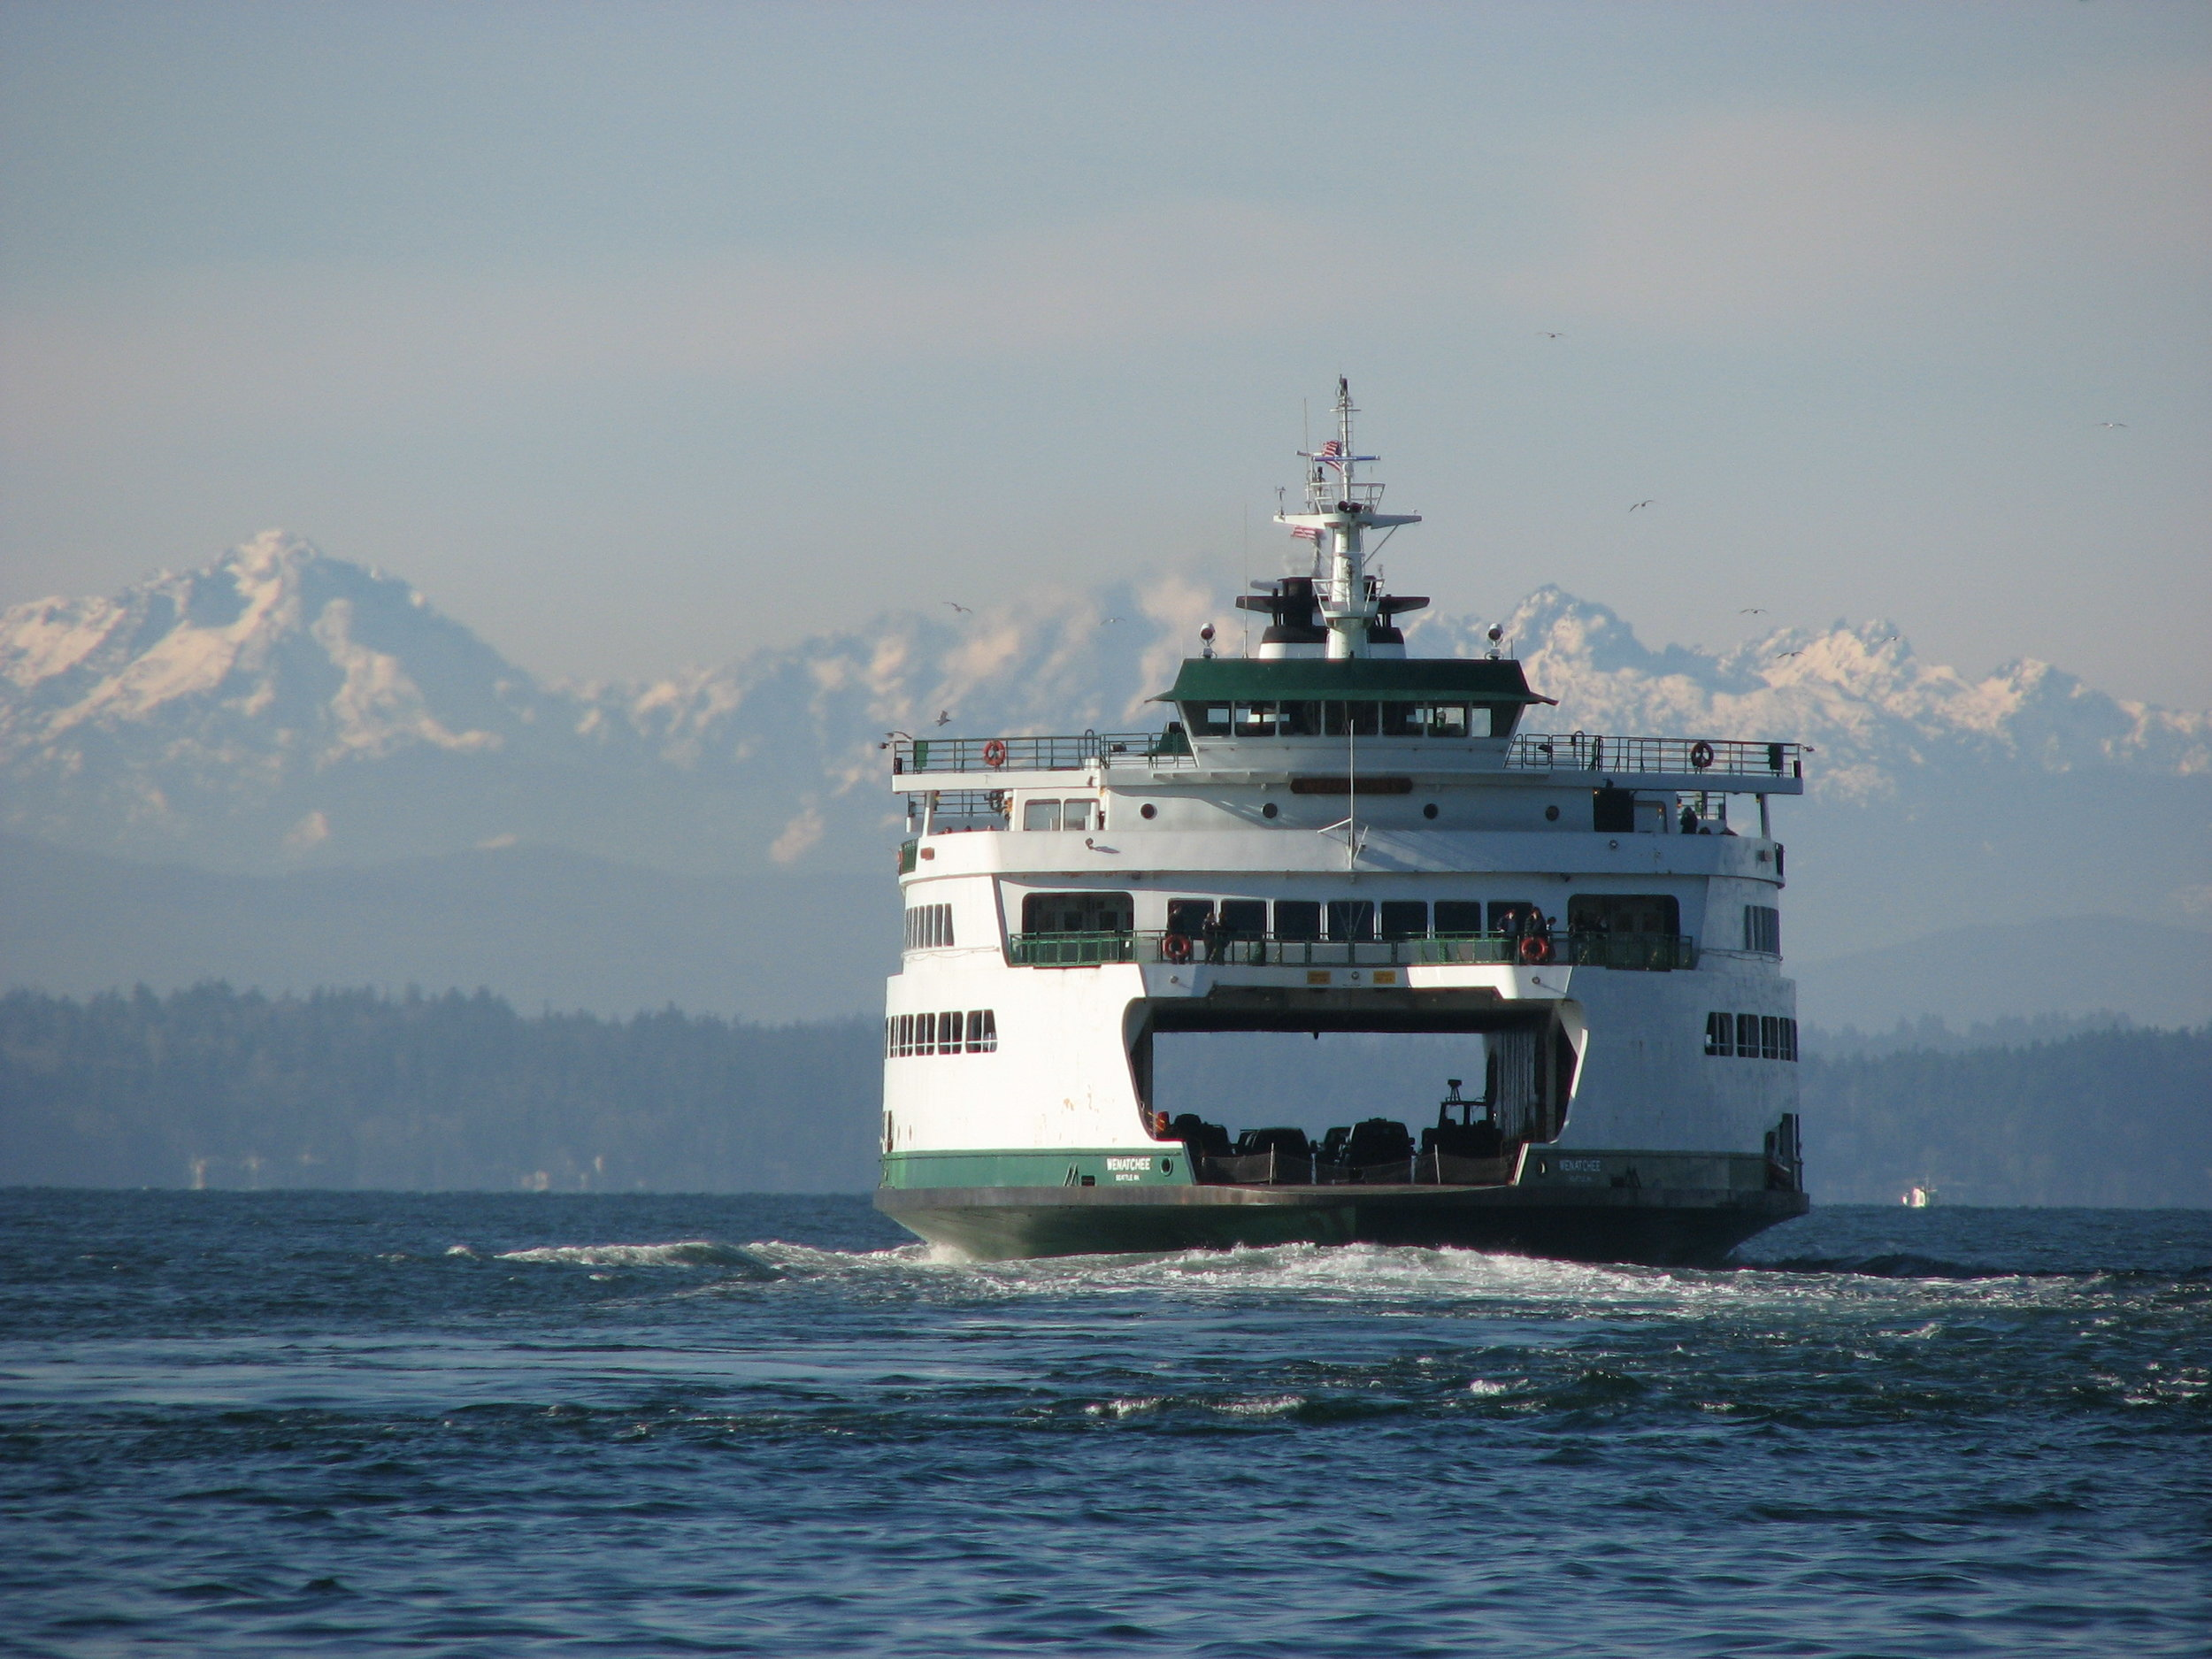 Washington State Ferries operates the largest ferry system in the United States. Twenty-two ferries cross Puget Sound and its inland waterways, carrying more than 22 million passengers to 20 different ports of call.